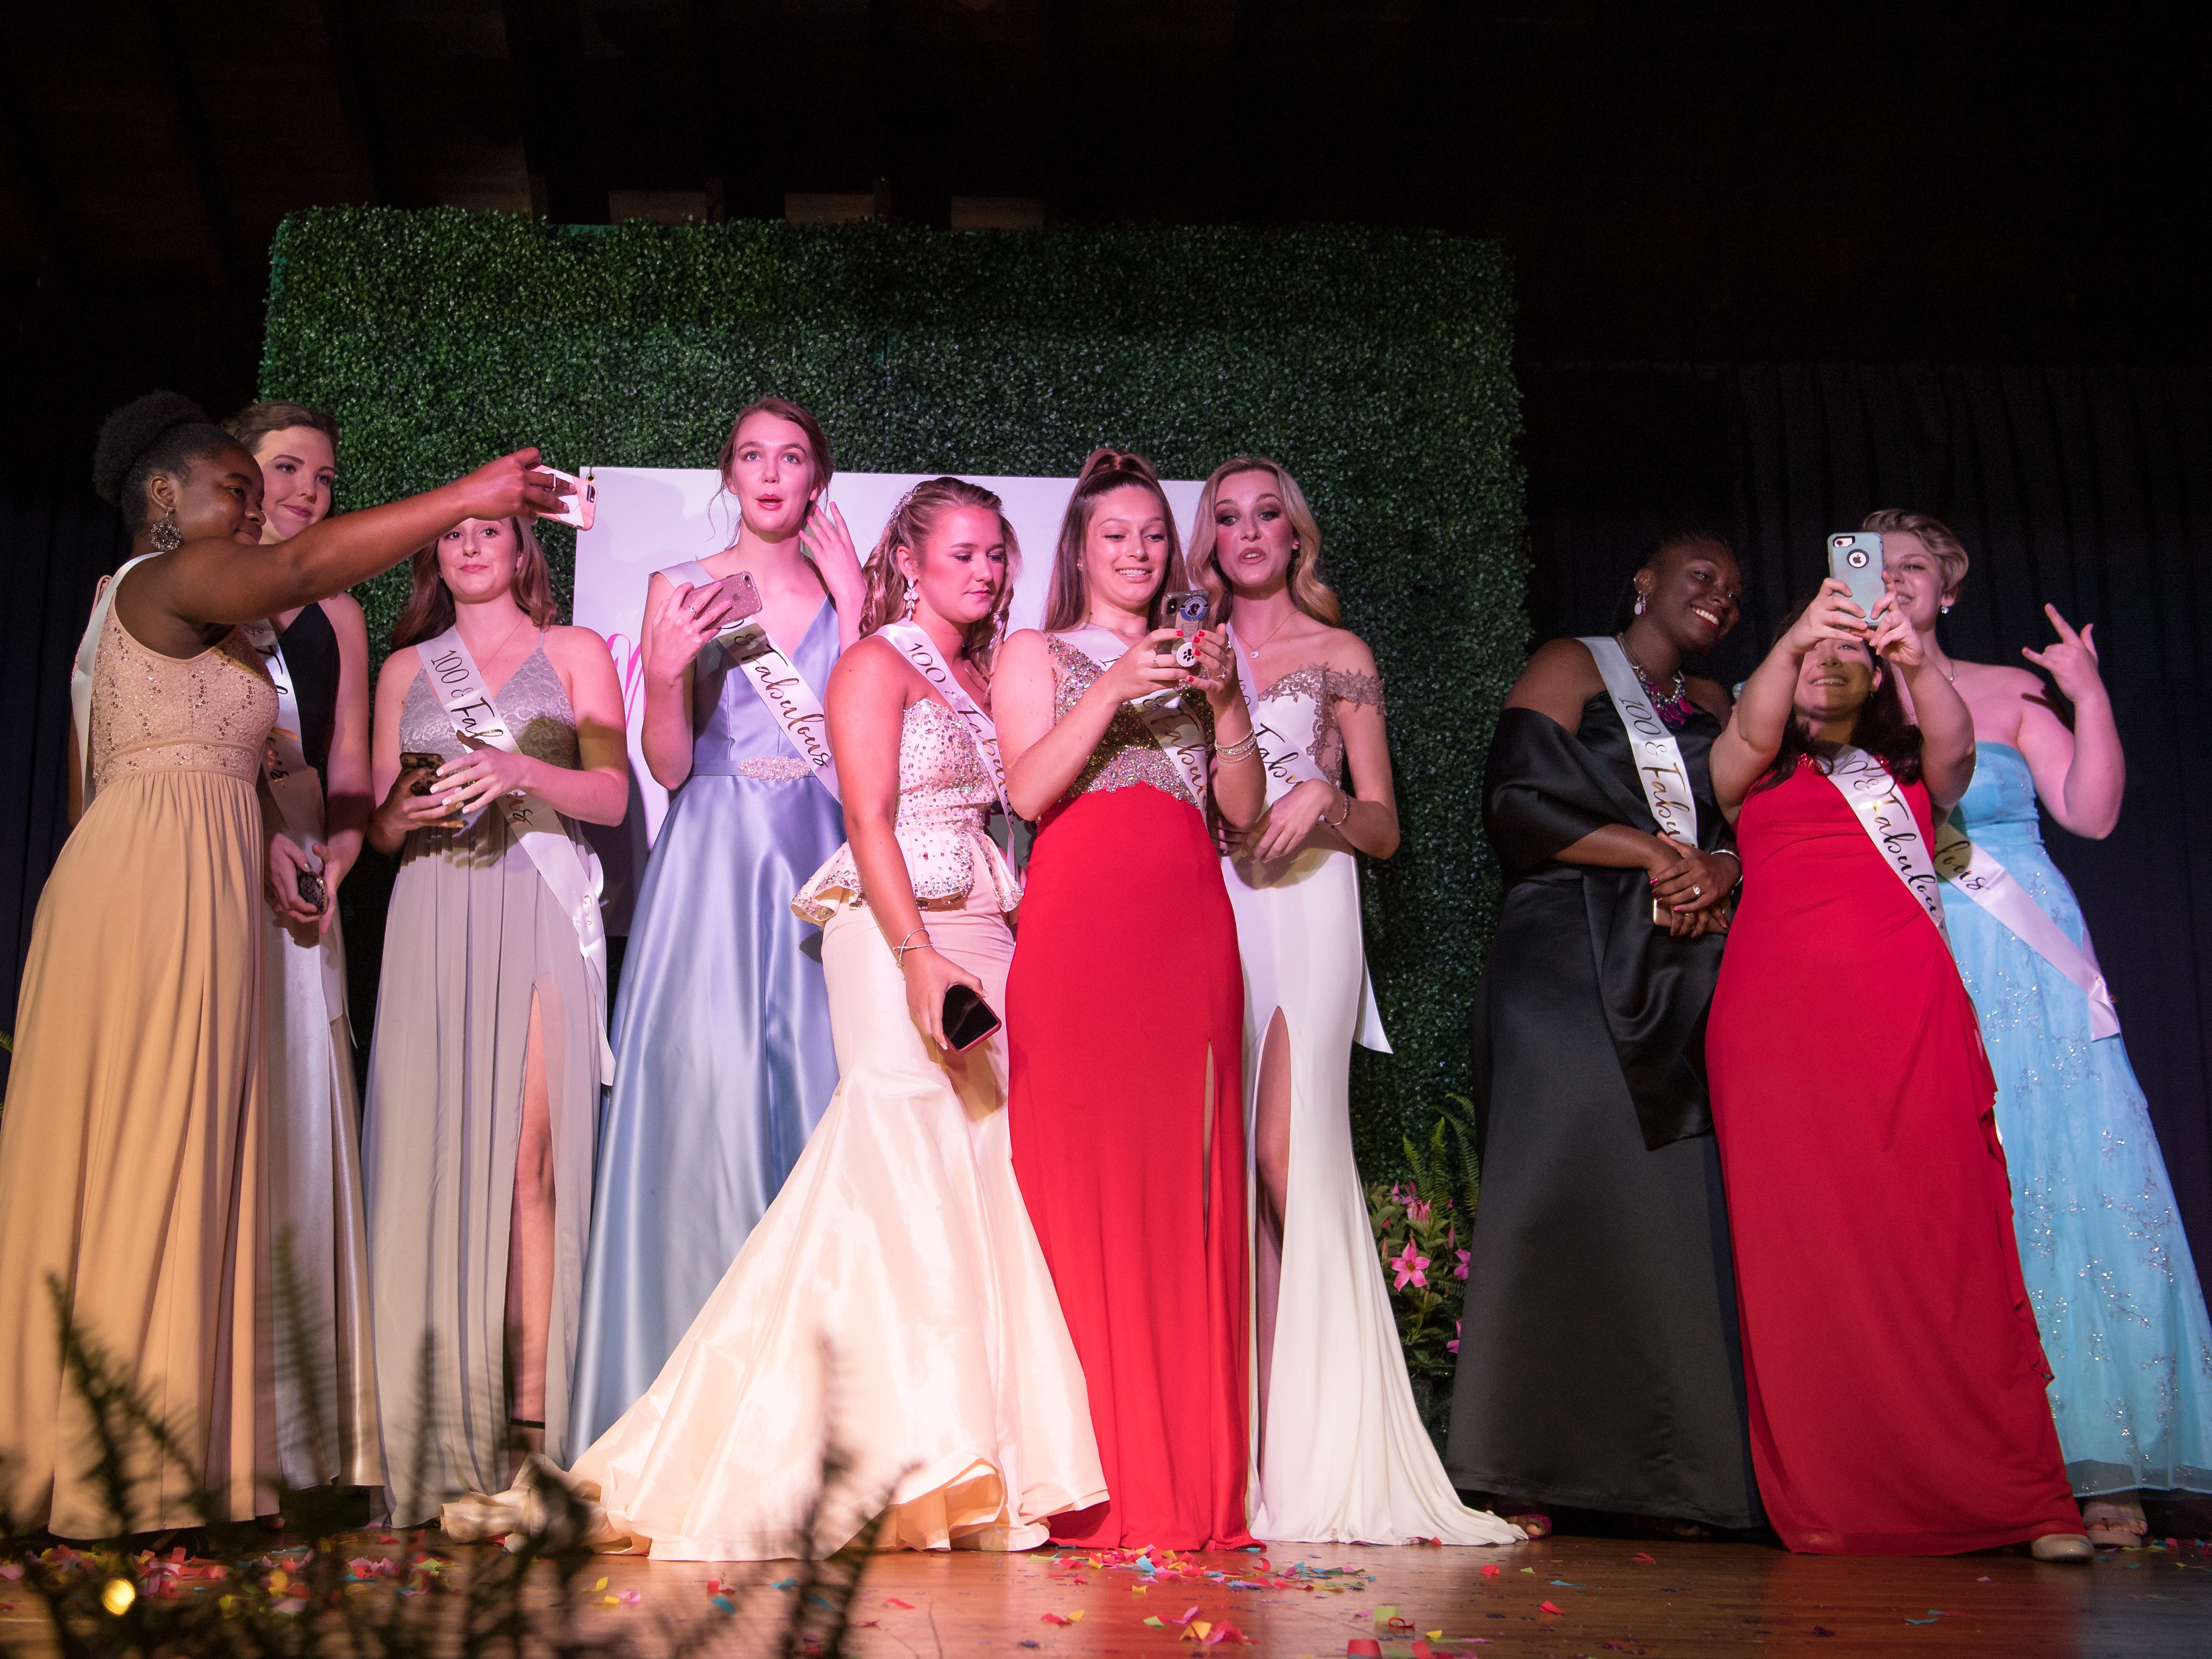 "The ten 2019 Miss Hibiscus Pageant  contestants pose during ""60 seconds of selfies"" onstage at the beginning of the pageant Thursday, April 11, 2019, at the Heritage Center in Vero Beach. ""It's an honor to be able to celebrate these amazing women, and really promote girl power,"" said emcee Cindy Goetz. The contestants (from left) are Unique Edden, Mackenzie Cooley, Kylie Gilbert, Marie Lorenz, Michaela Silvey, Jasmine Murray, Grace Carlon, Alicia Maneiro, Daisy Cabanas and Rebekah Parsons."